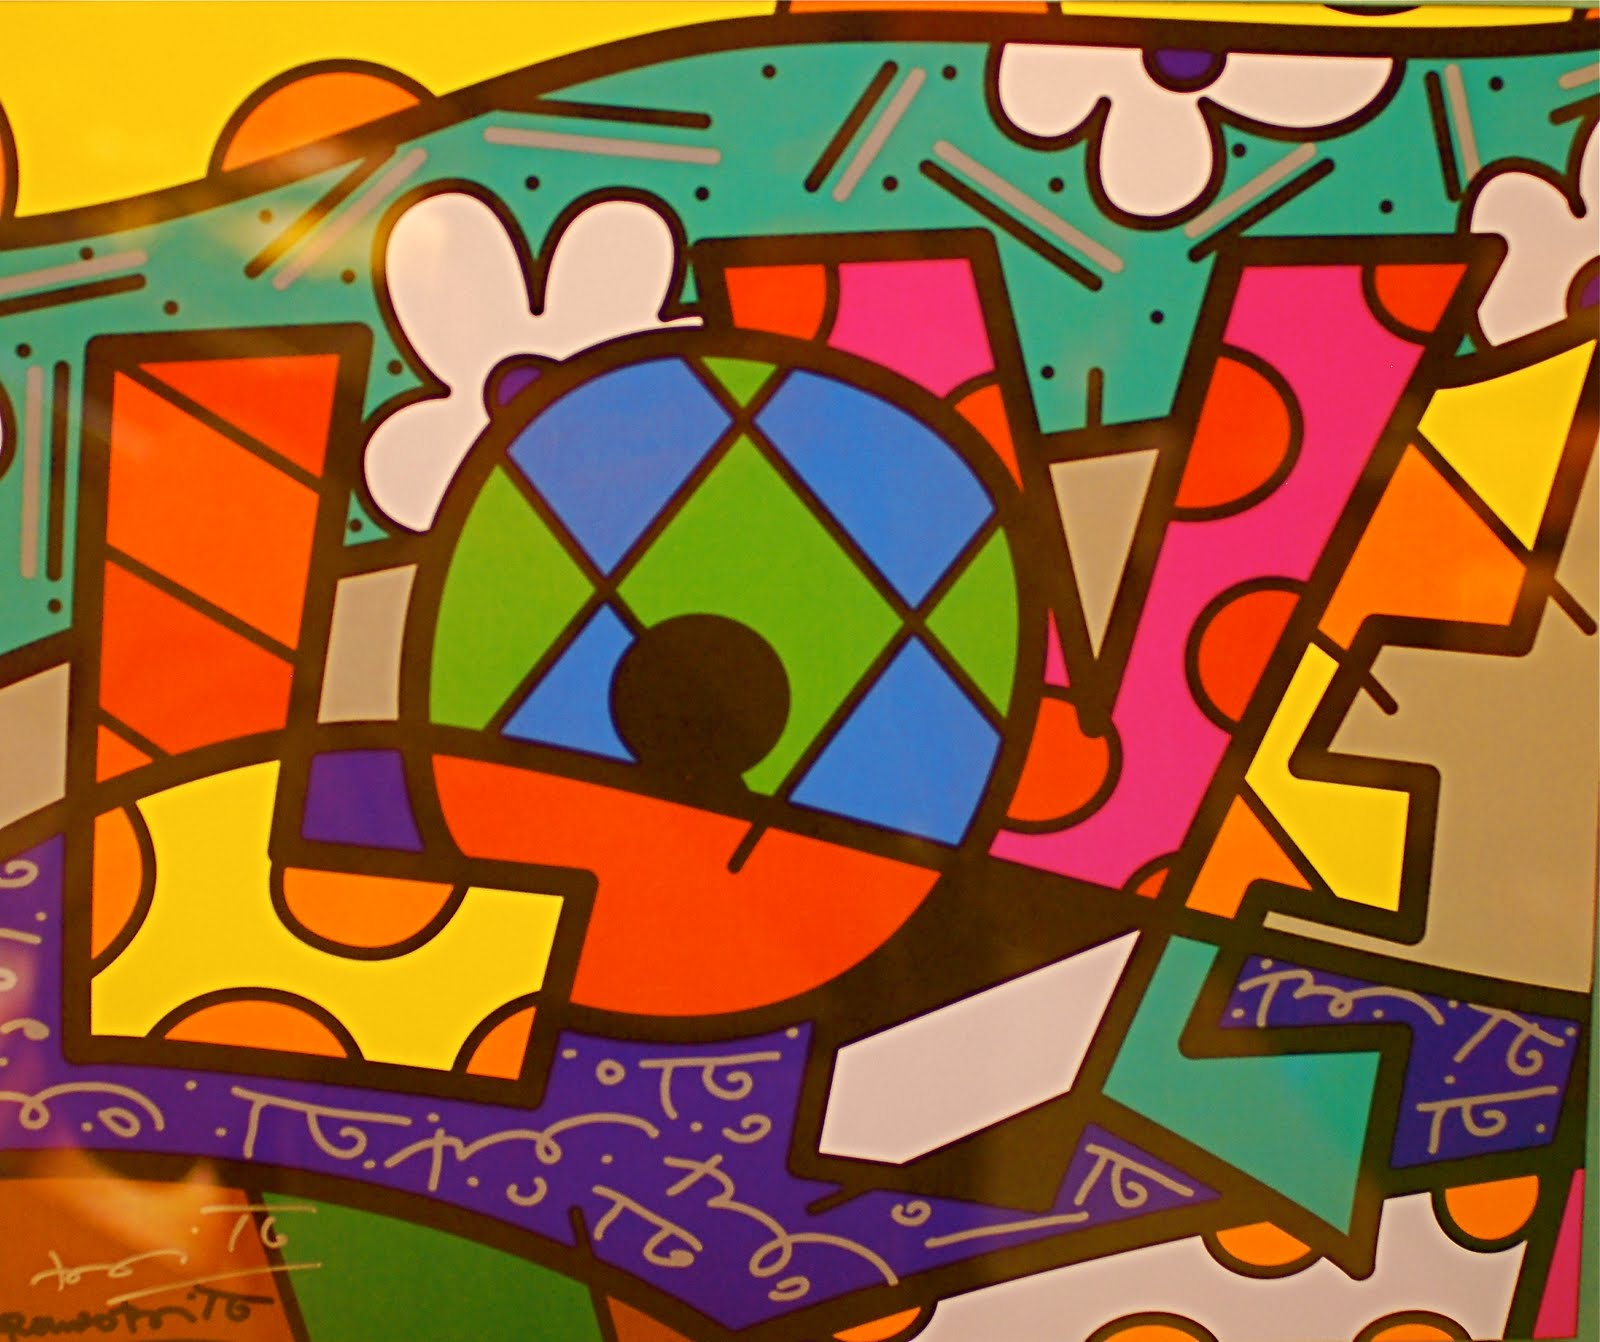 NYC ♥ NYC: Art and Candy: ROMERO BRITTO'S ART and DYLAN'S CANDY ...